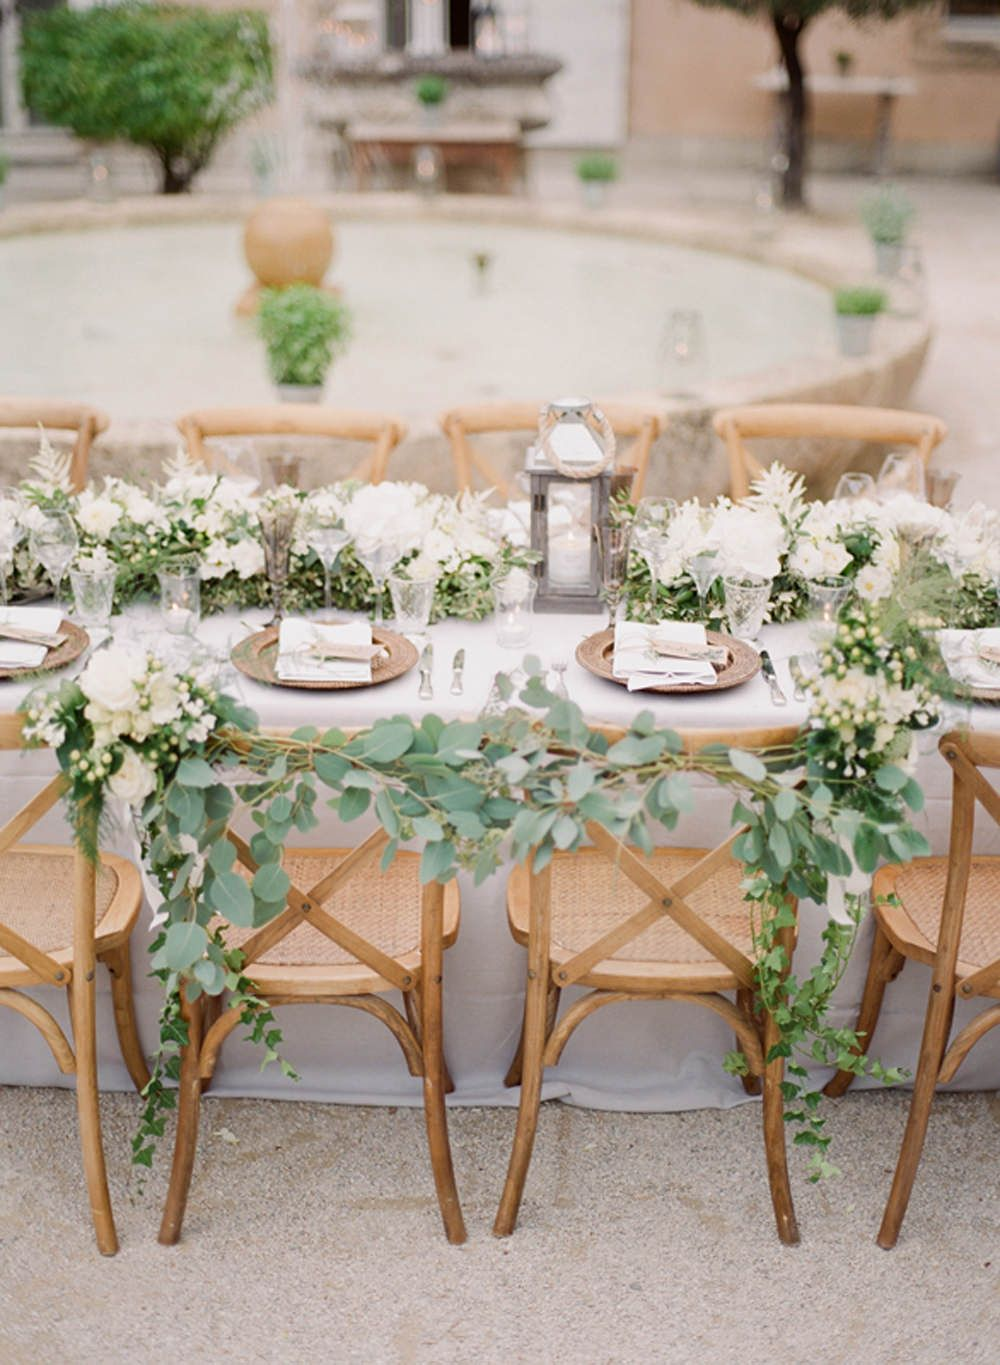 Charlotte Simpson Outdoor Wedding At Chateau De Massillan In Provence.  Chair BacksWedding TablesBride GroomRustic ...